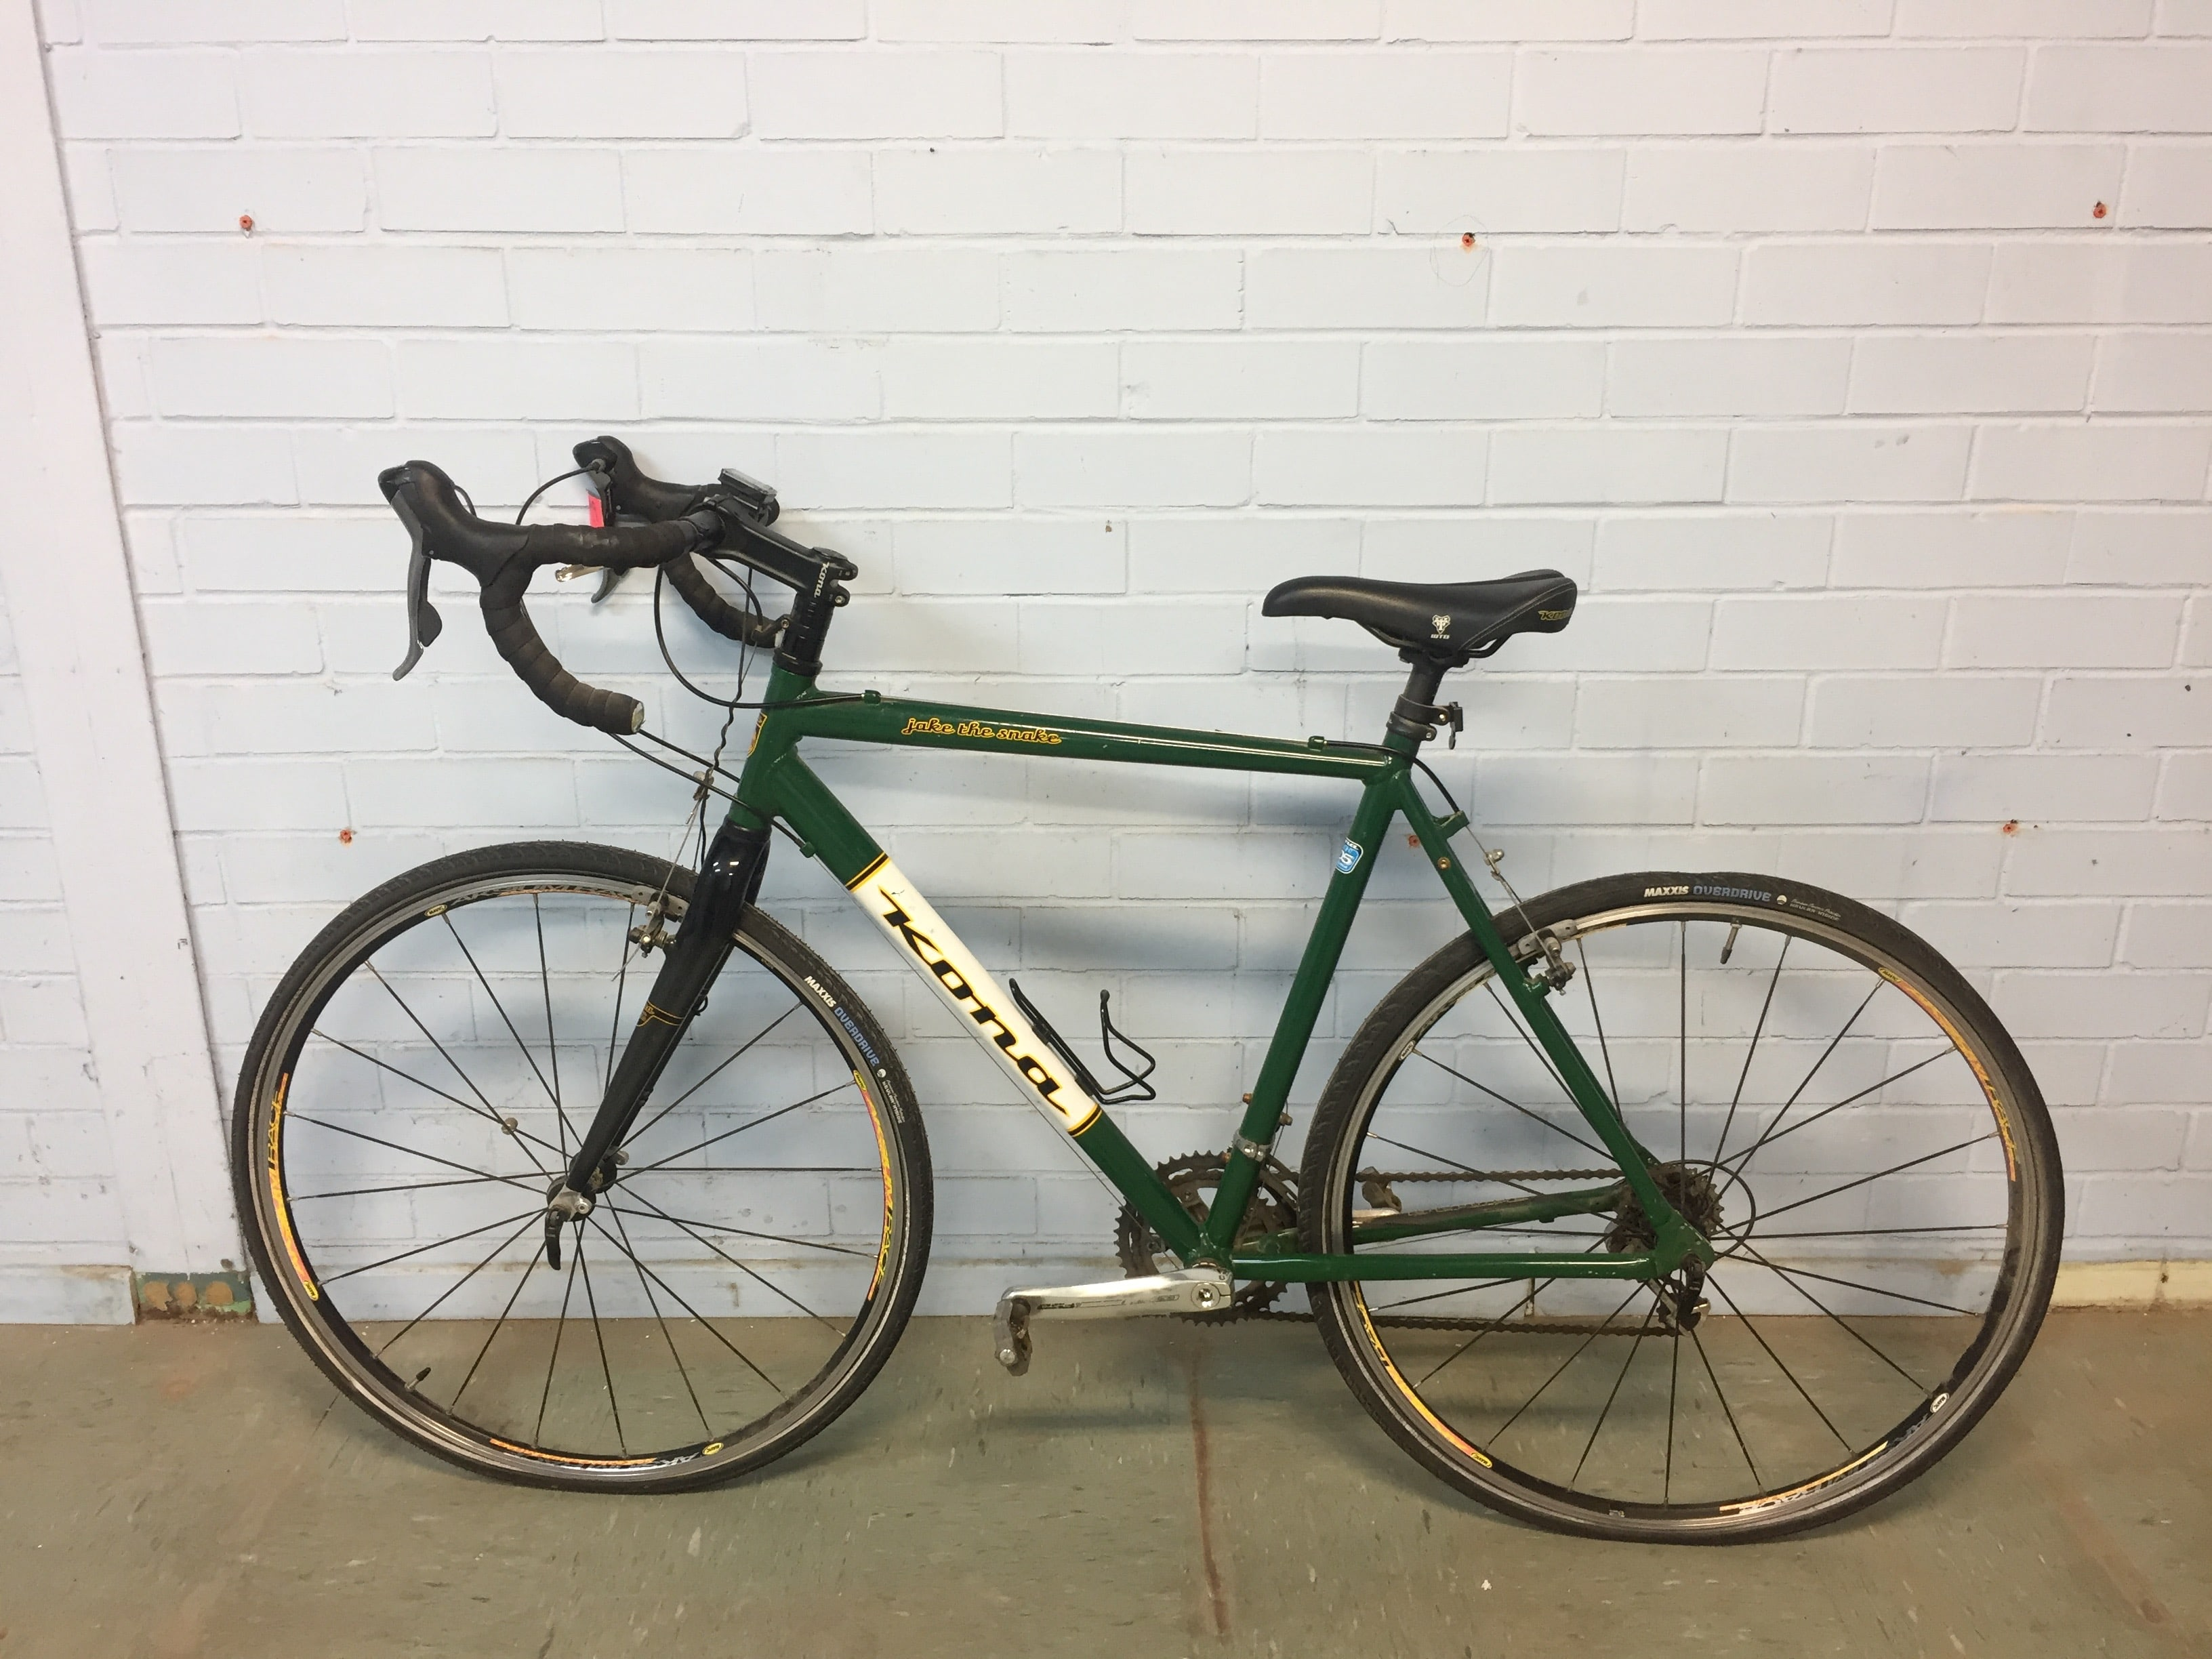 Buy Kona road Bike \'Jake the Snake Model From a Pawn Shop Emerton ...